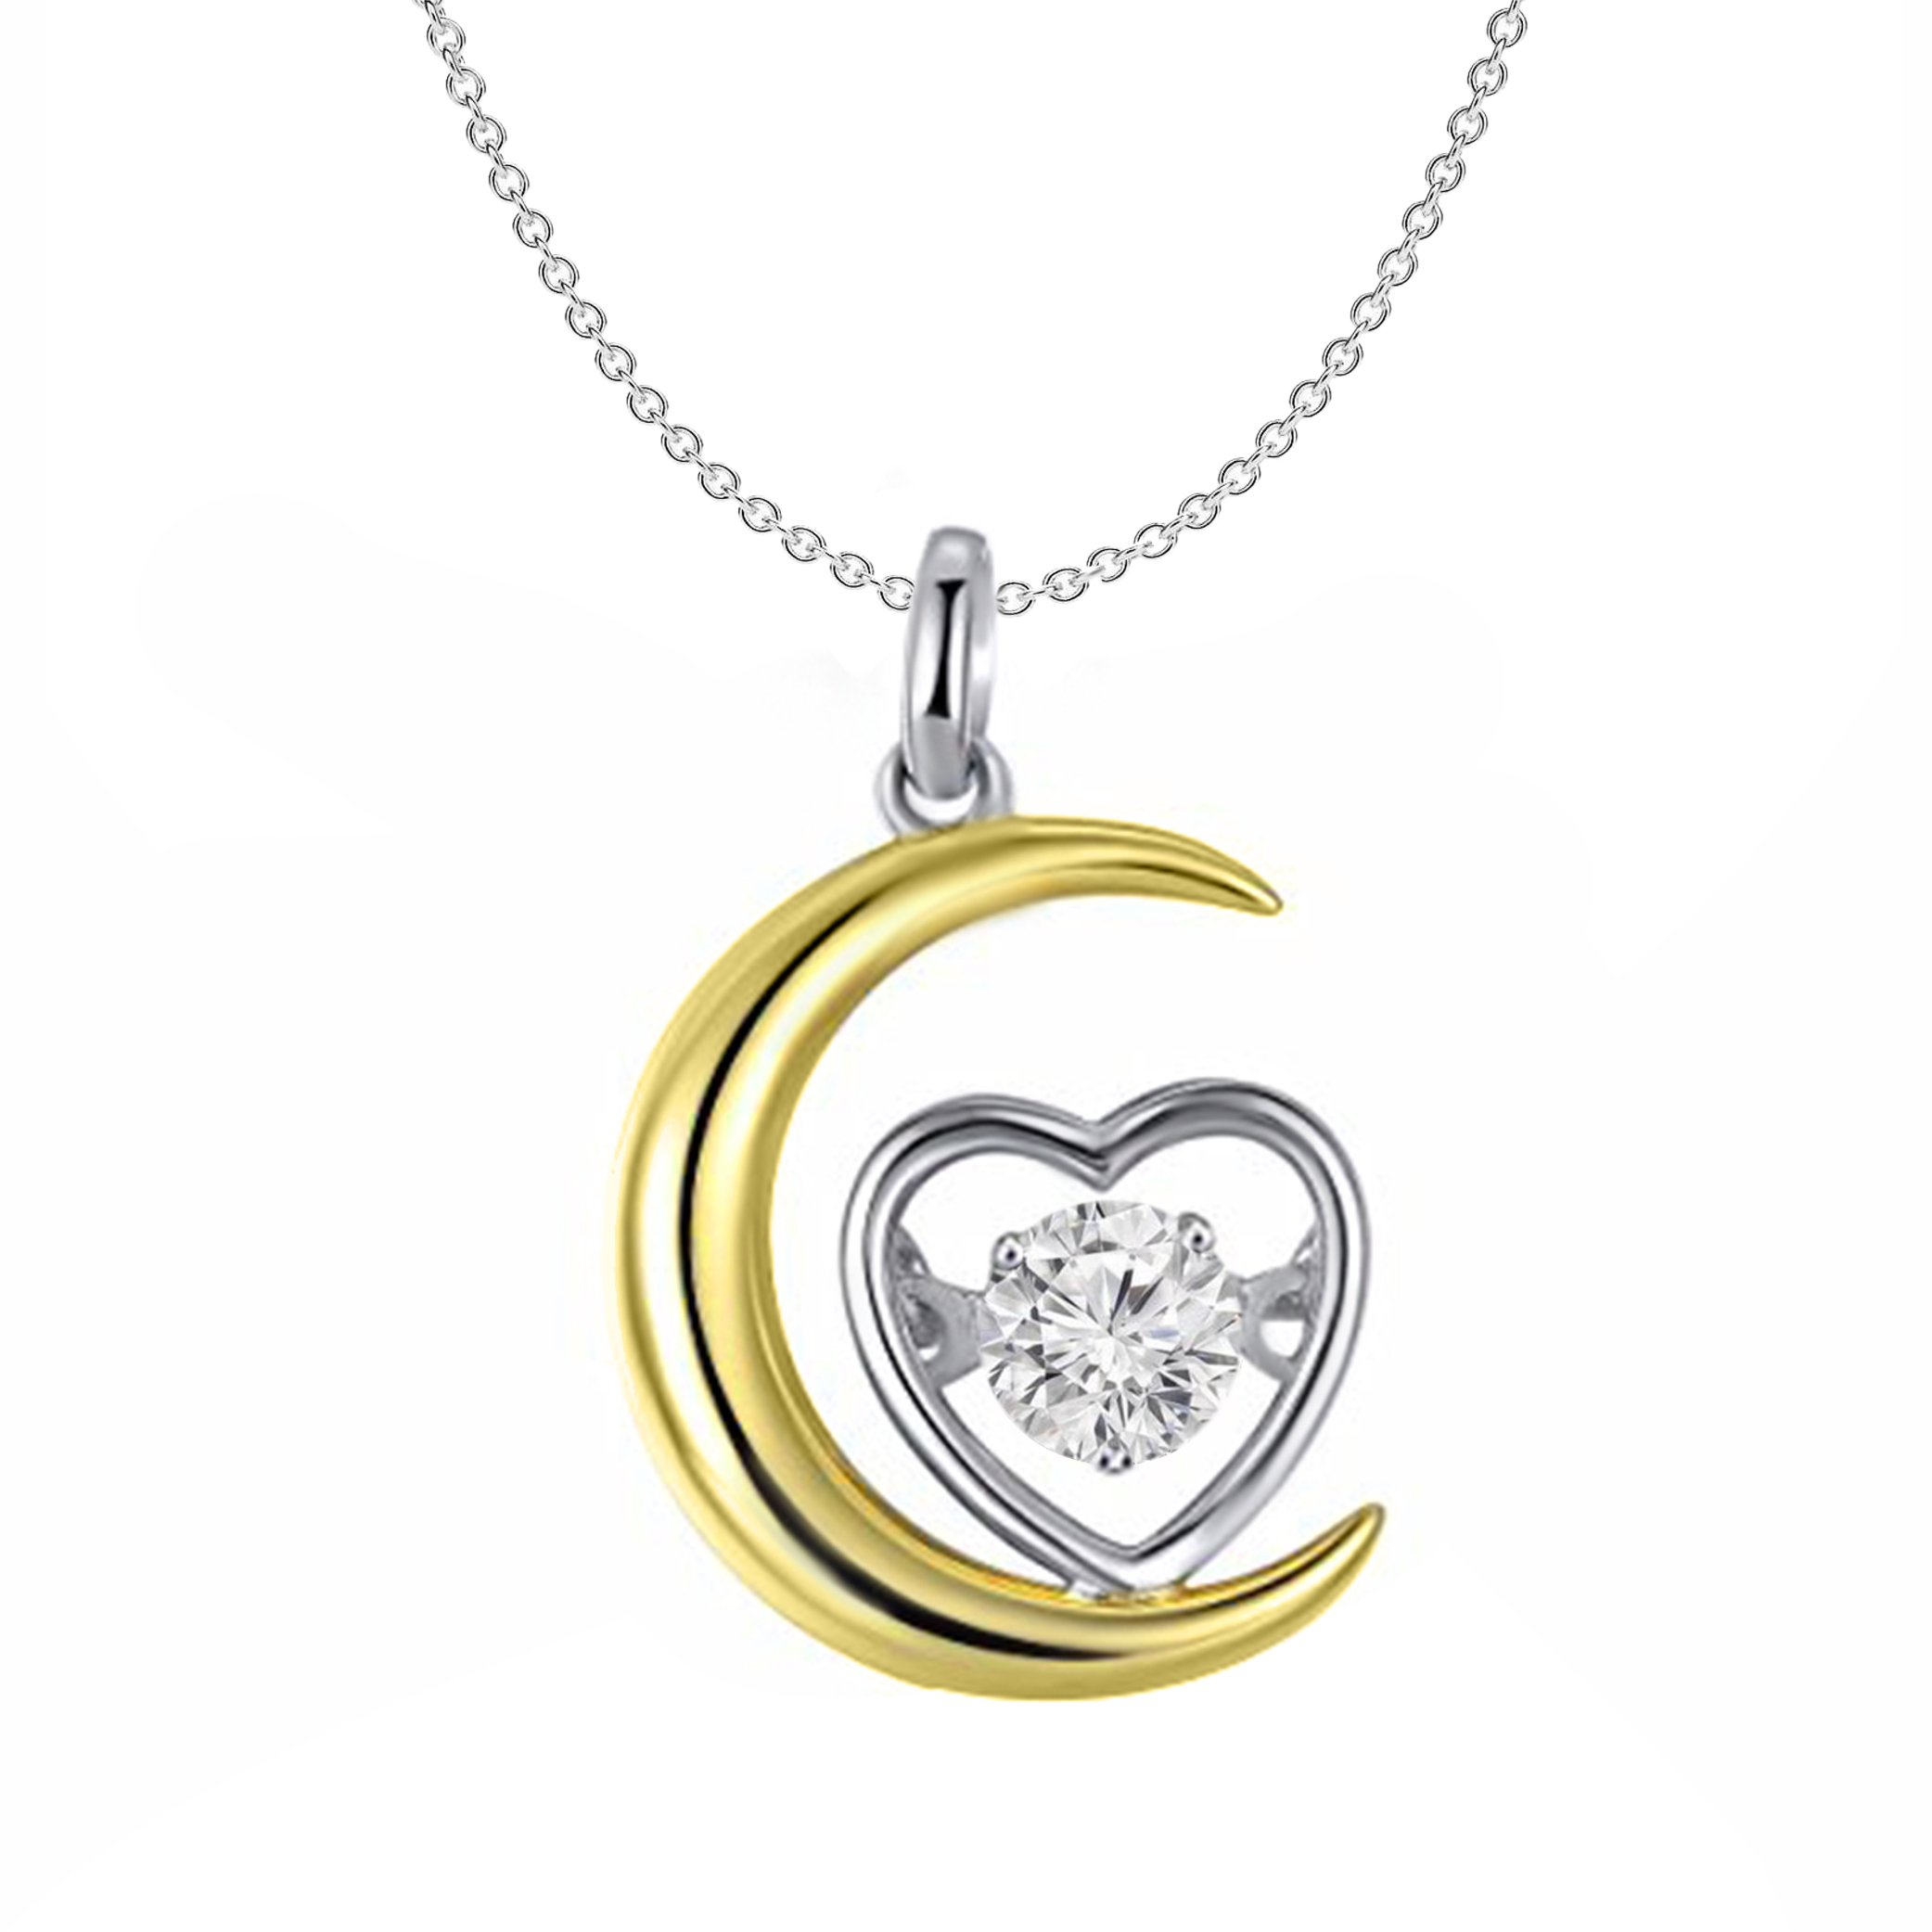 0.10 Ct Round Cut Natural Diamond 10K Gold Moon & Love Heart Pendant Necklace (yellow-gold)